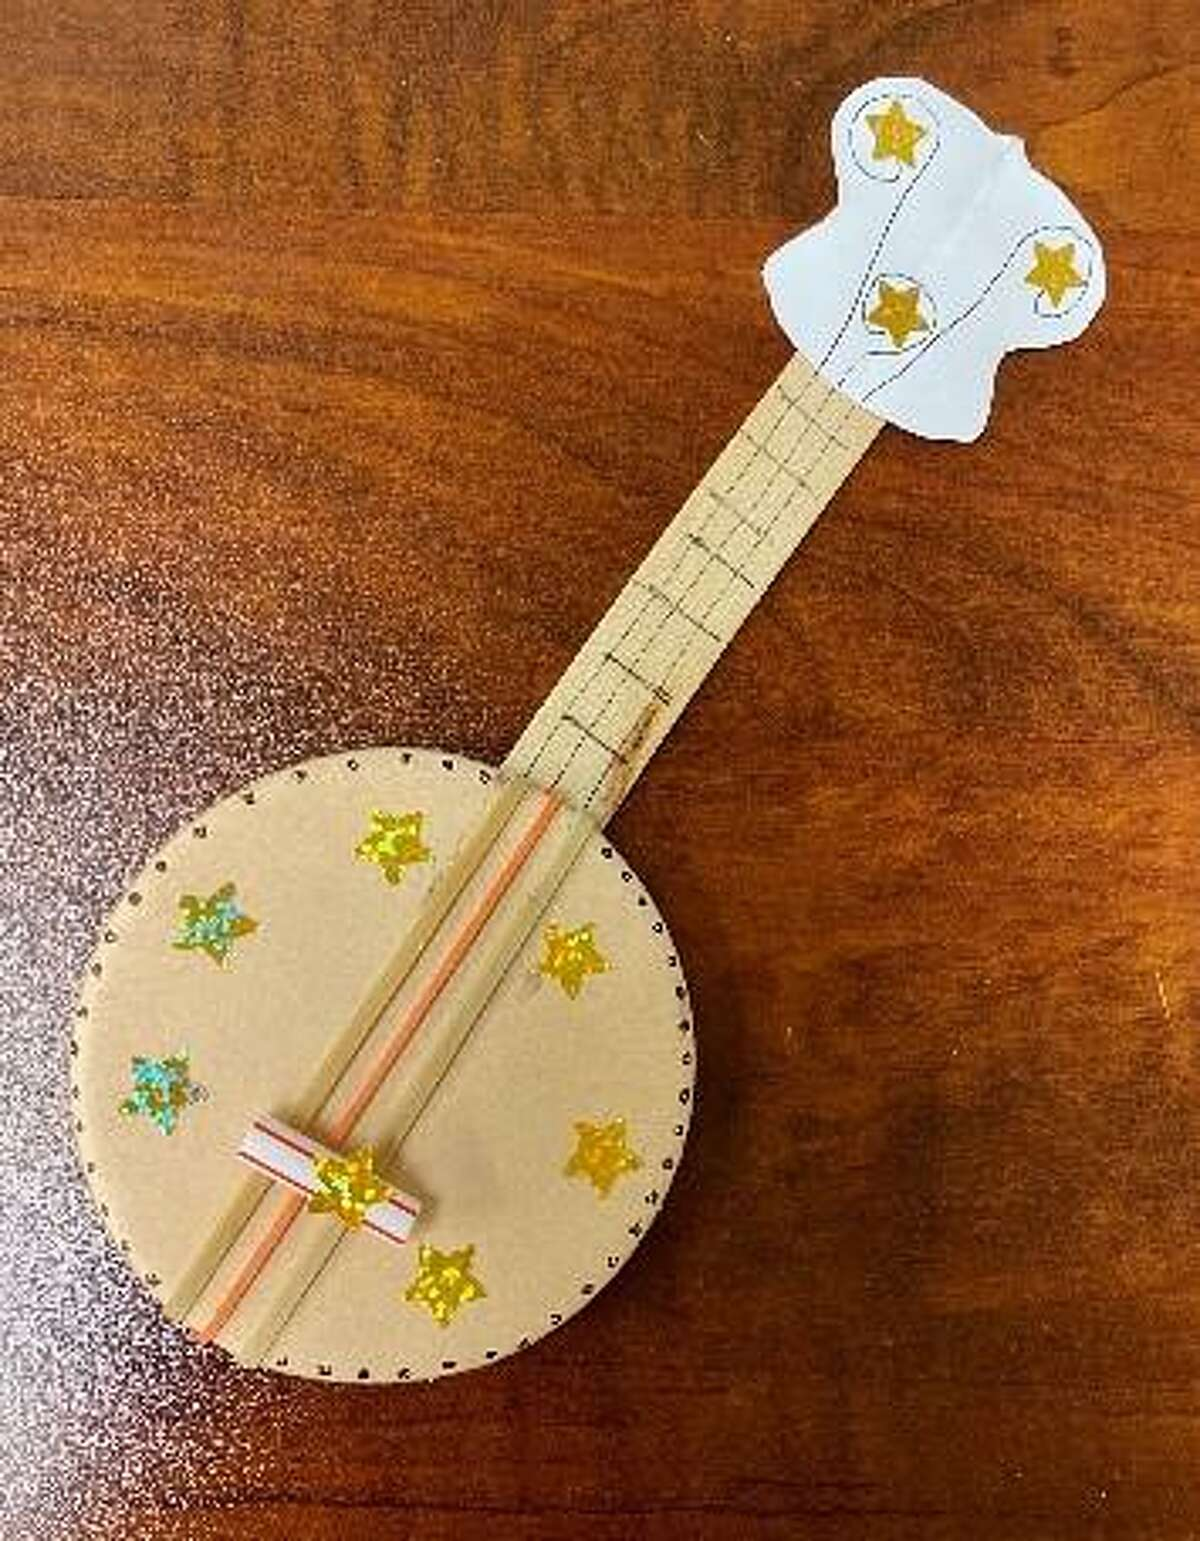 This children's rubber band banjo activity was adapted from a Beyond the Briscoe craft lesson.